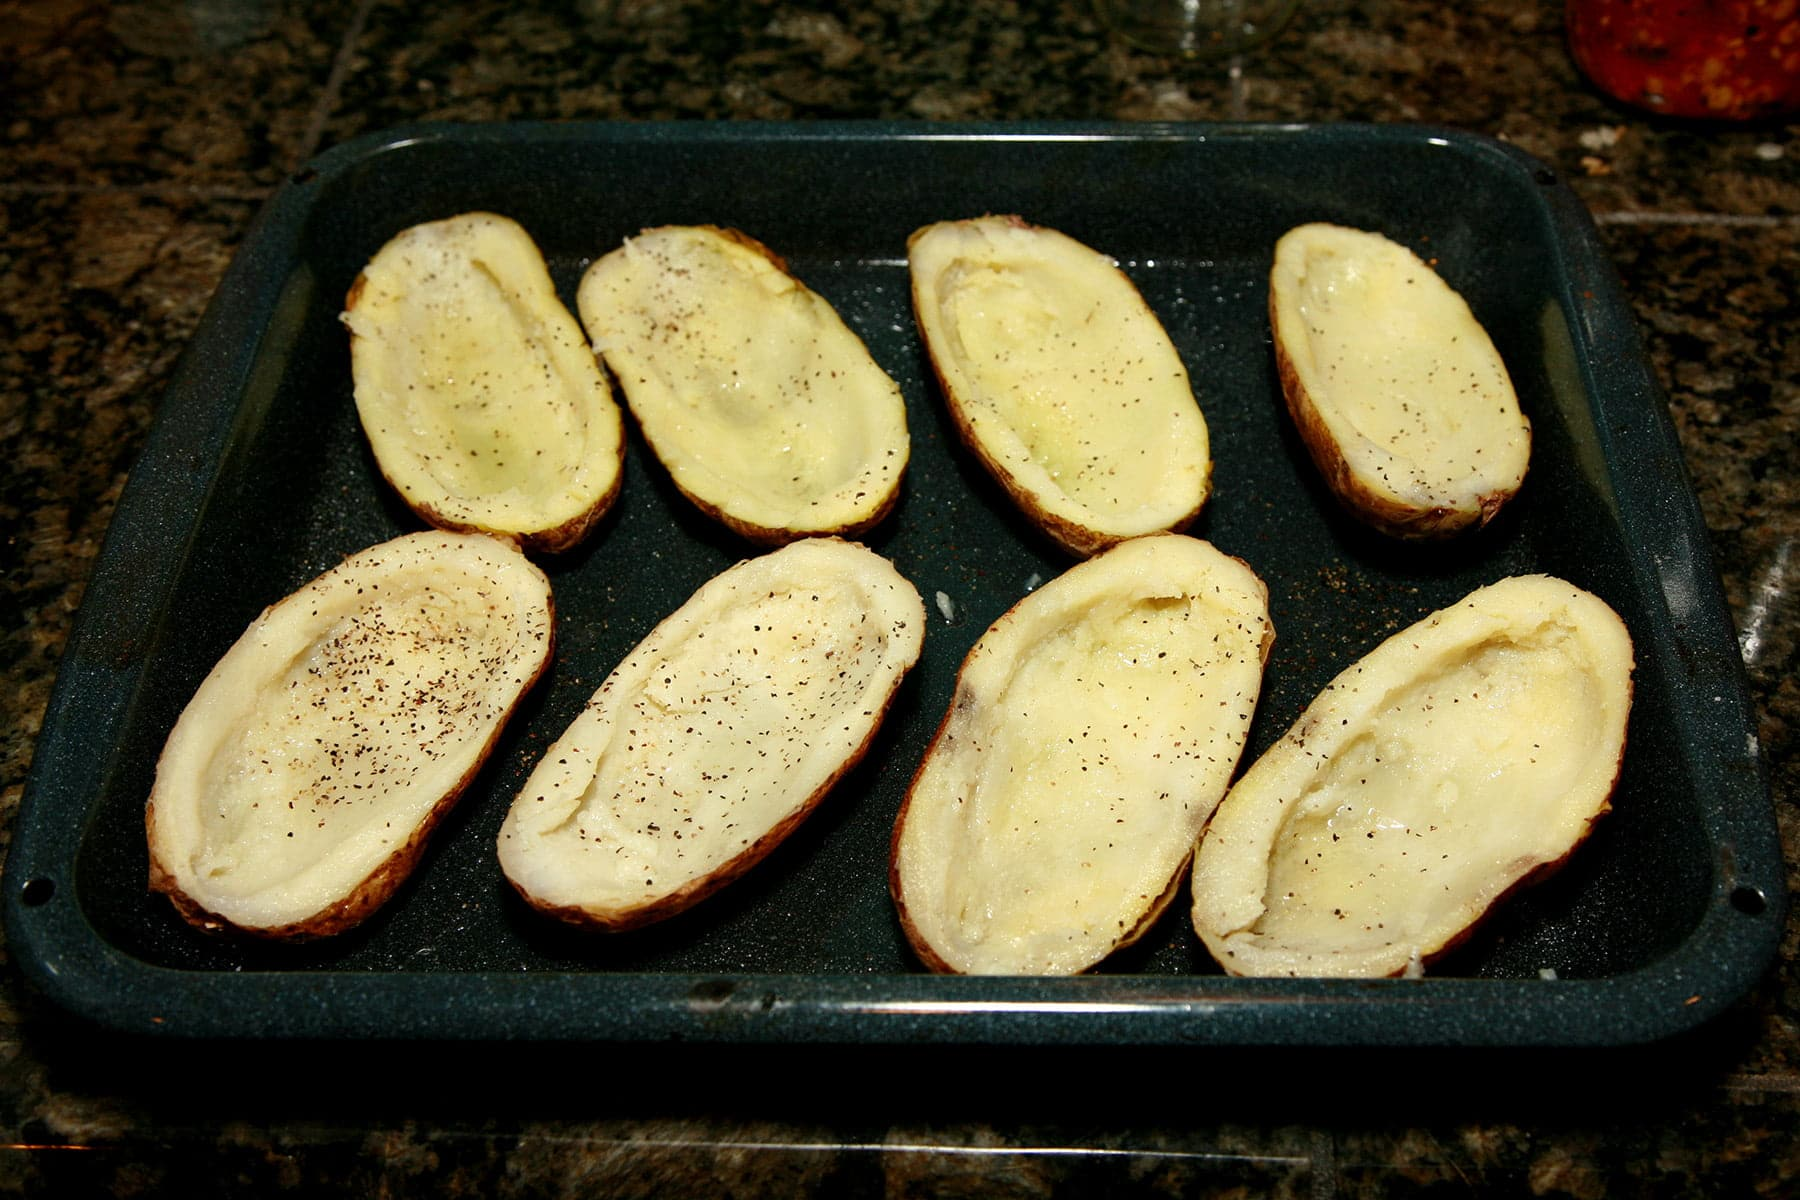 Hollowed out potato skins are arranged on a roasting pan.